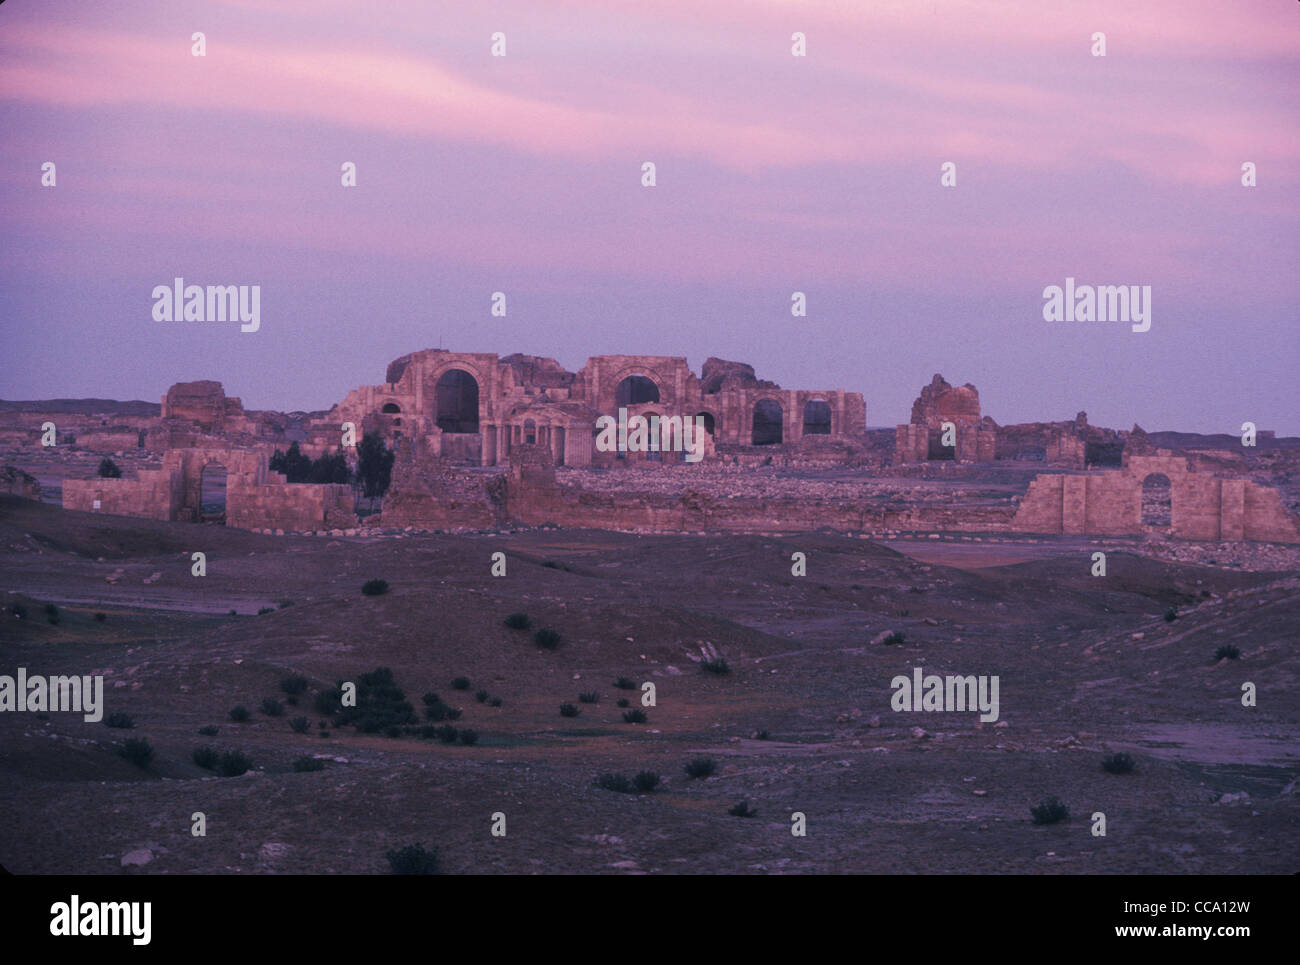 Ruins of the ancient Parthian city of Hatra, founded in 1BC a UNESCO world heritage site in the Iraqi Desert of - Stock Image